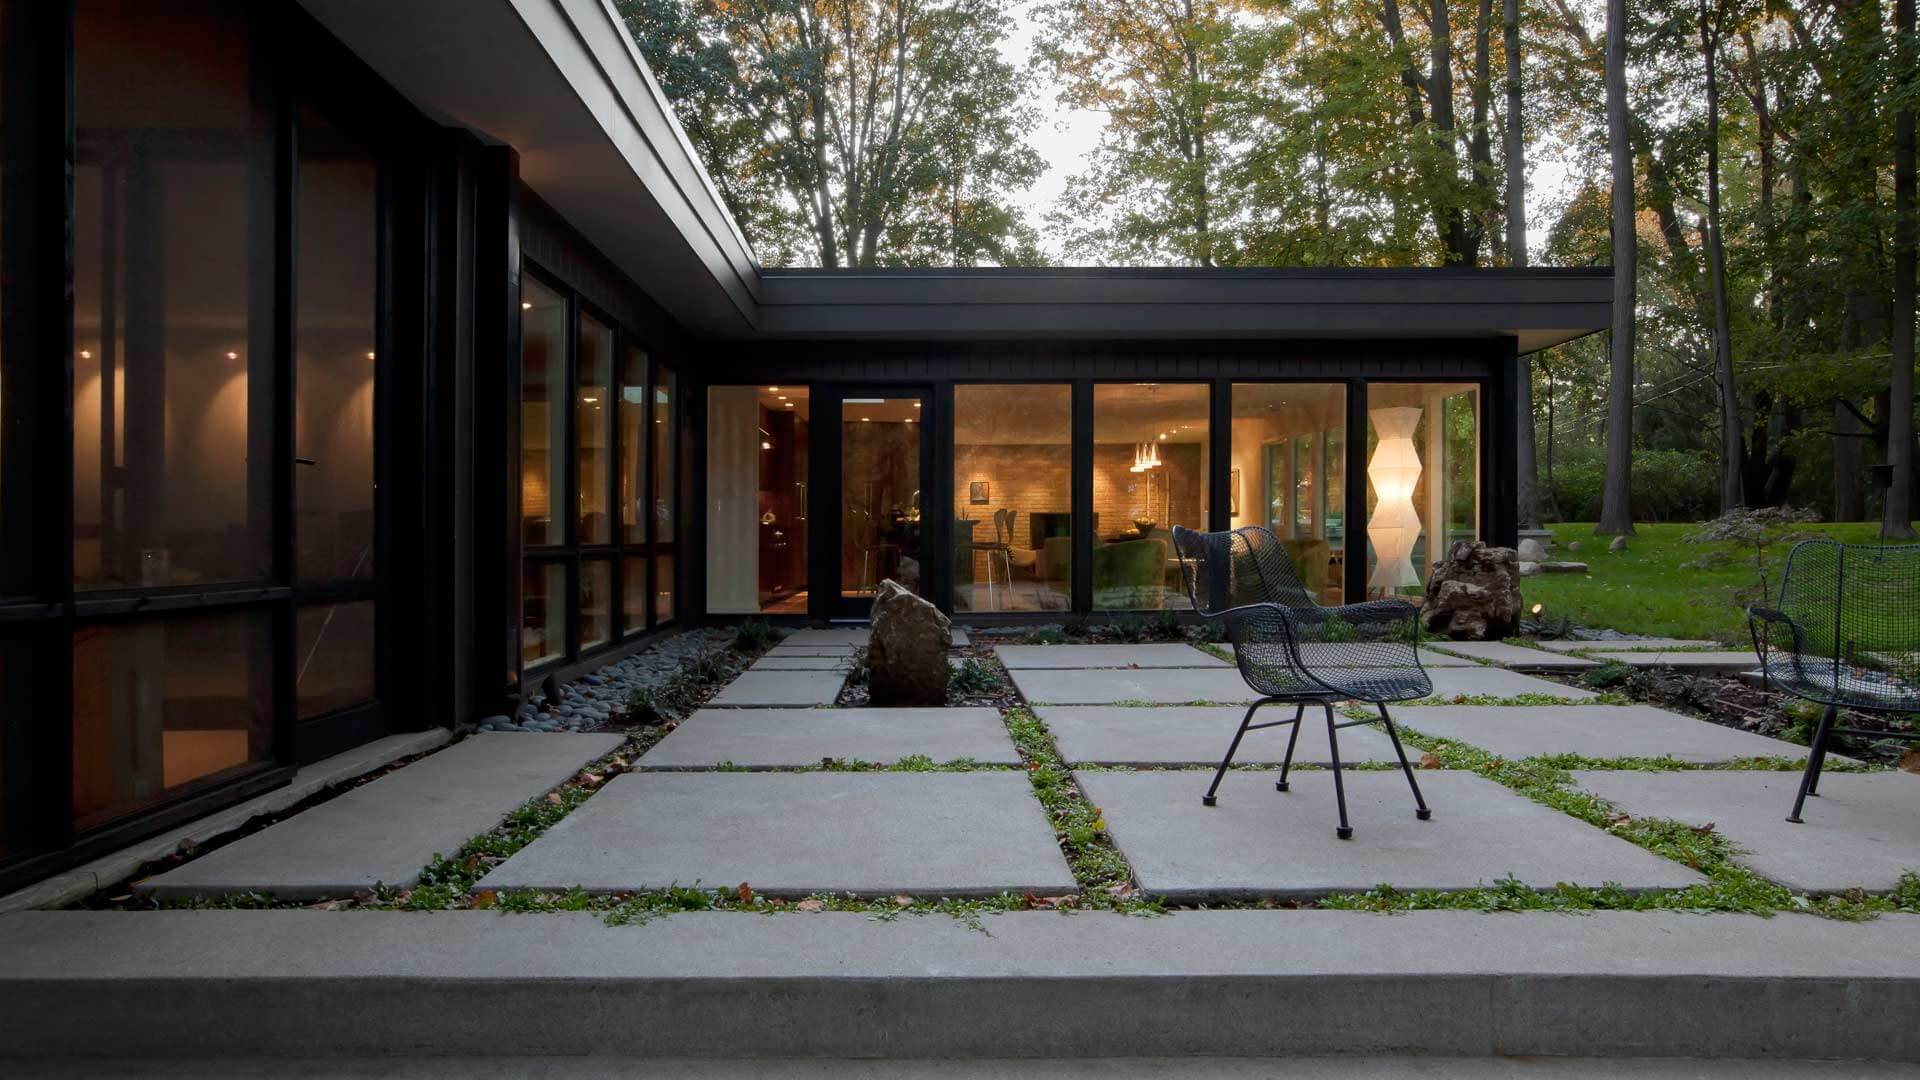 Dezeen Magazine Features HAUS Project - Flat Roofs, large windows, giant windows, window walls, private moss garden, private terrace, wooded site, concrete pavers, concrete pads, modern landscaping, screened porch, floor to ceiling windows, paper lanterns, Noguchi floor lamp, brick fireplace - Midcentury Modern Renovation - 81st Street - Indianapolis, Christopher Short, Architect, HAUS Architecture